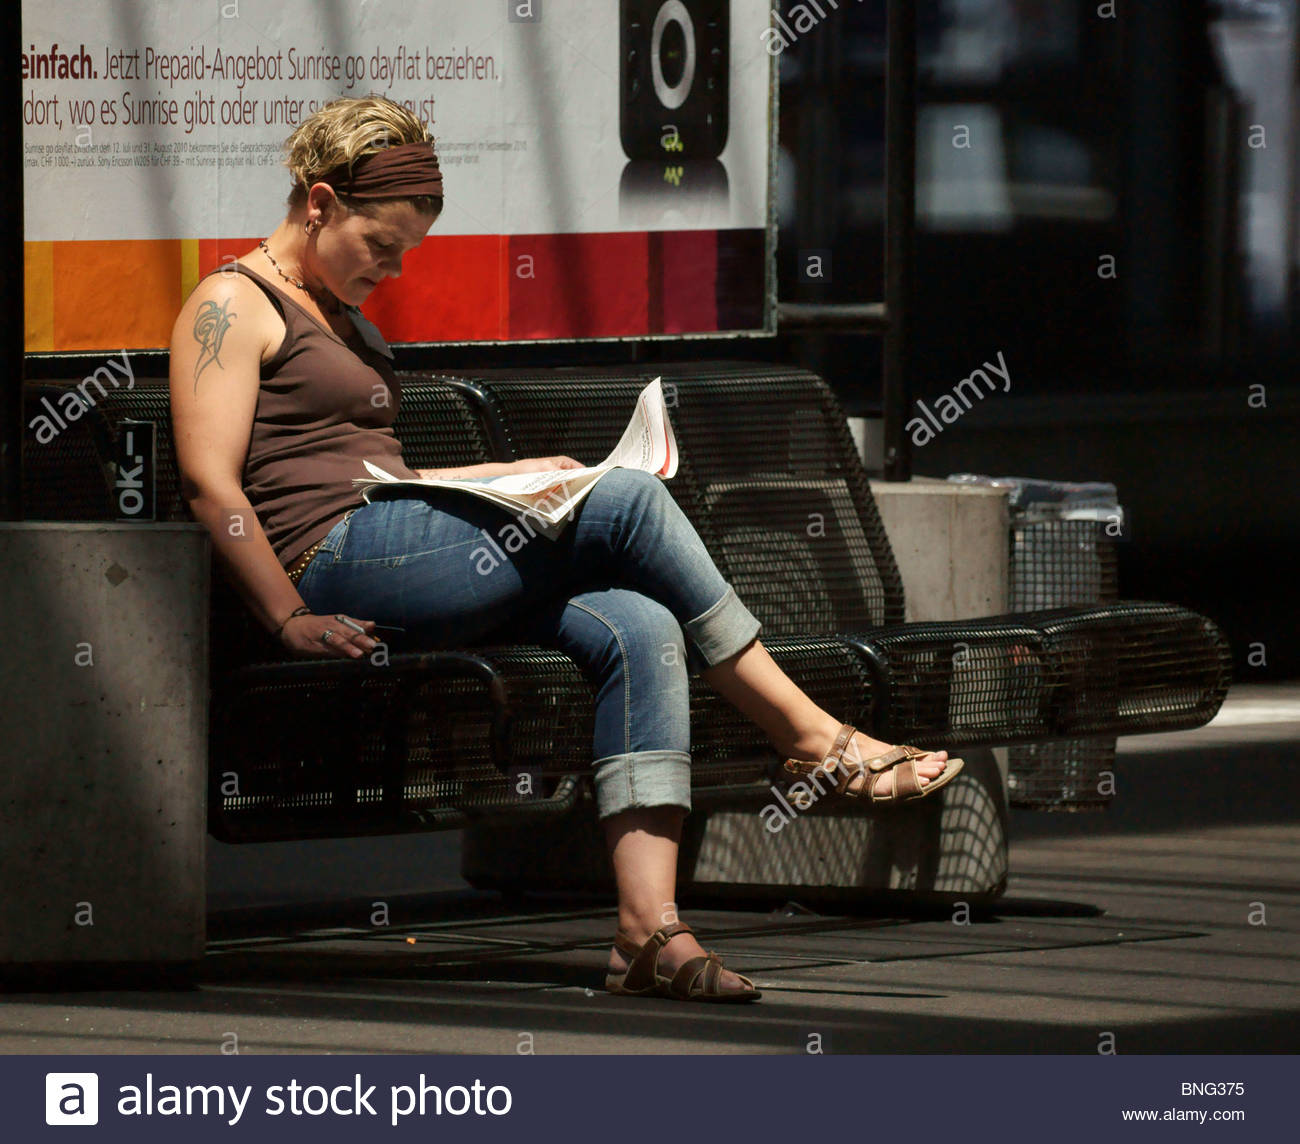 Tattoo Woman Reading: Young WOMAN With Tattoo On Arm Reading Newspaper Sitting